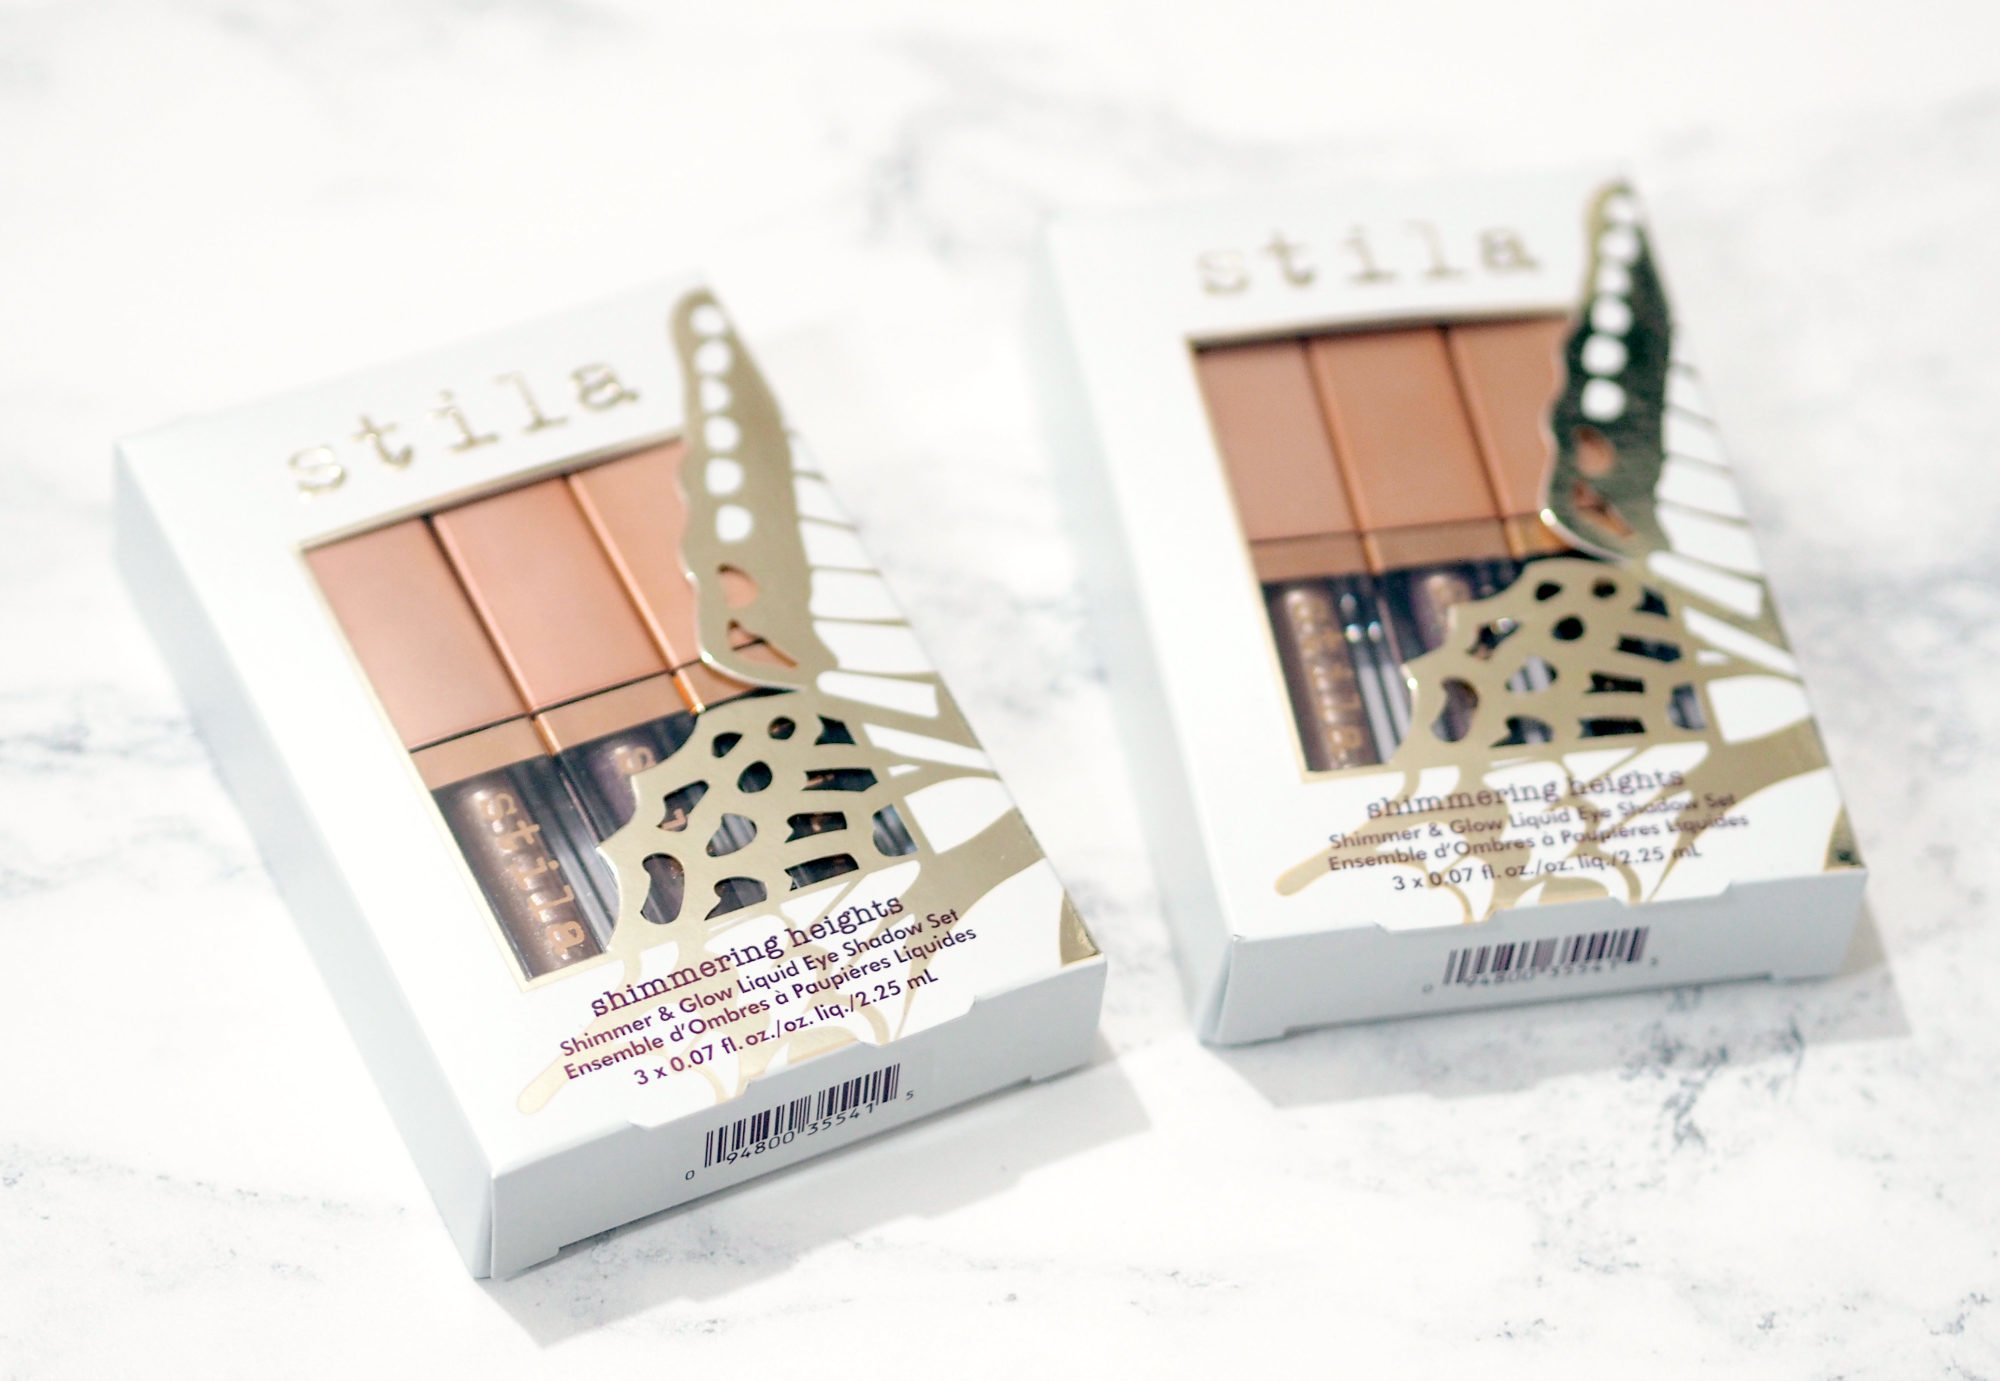 Stila Shimmering Heights Shimmer and Glow Eyeshadow Set PLUS Giveaway!